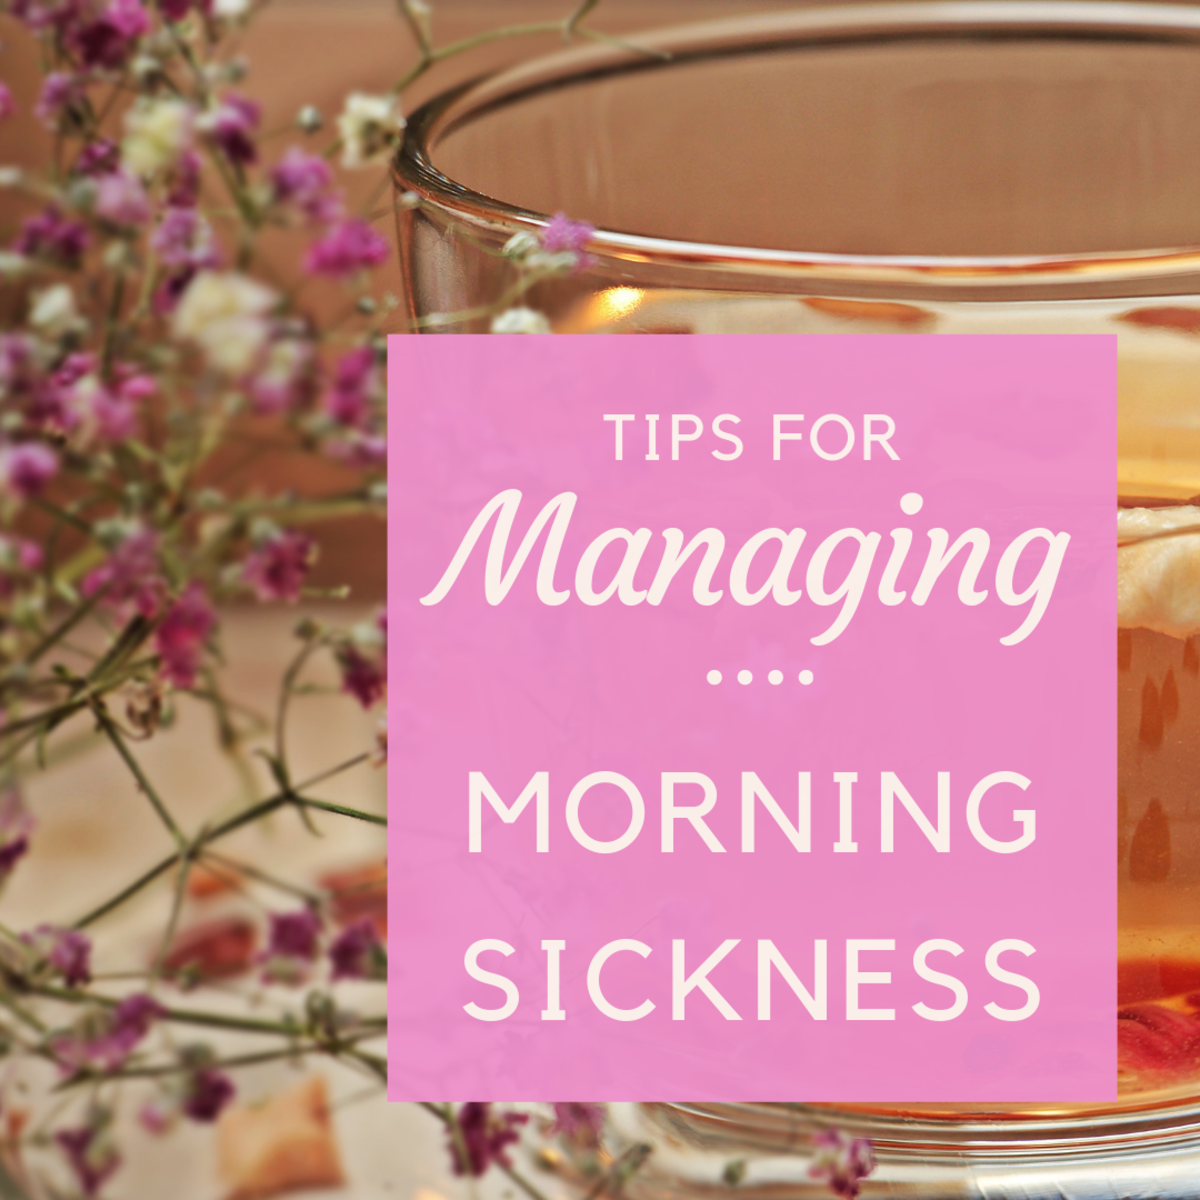 Natural Ways to Combat Morning Sickness